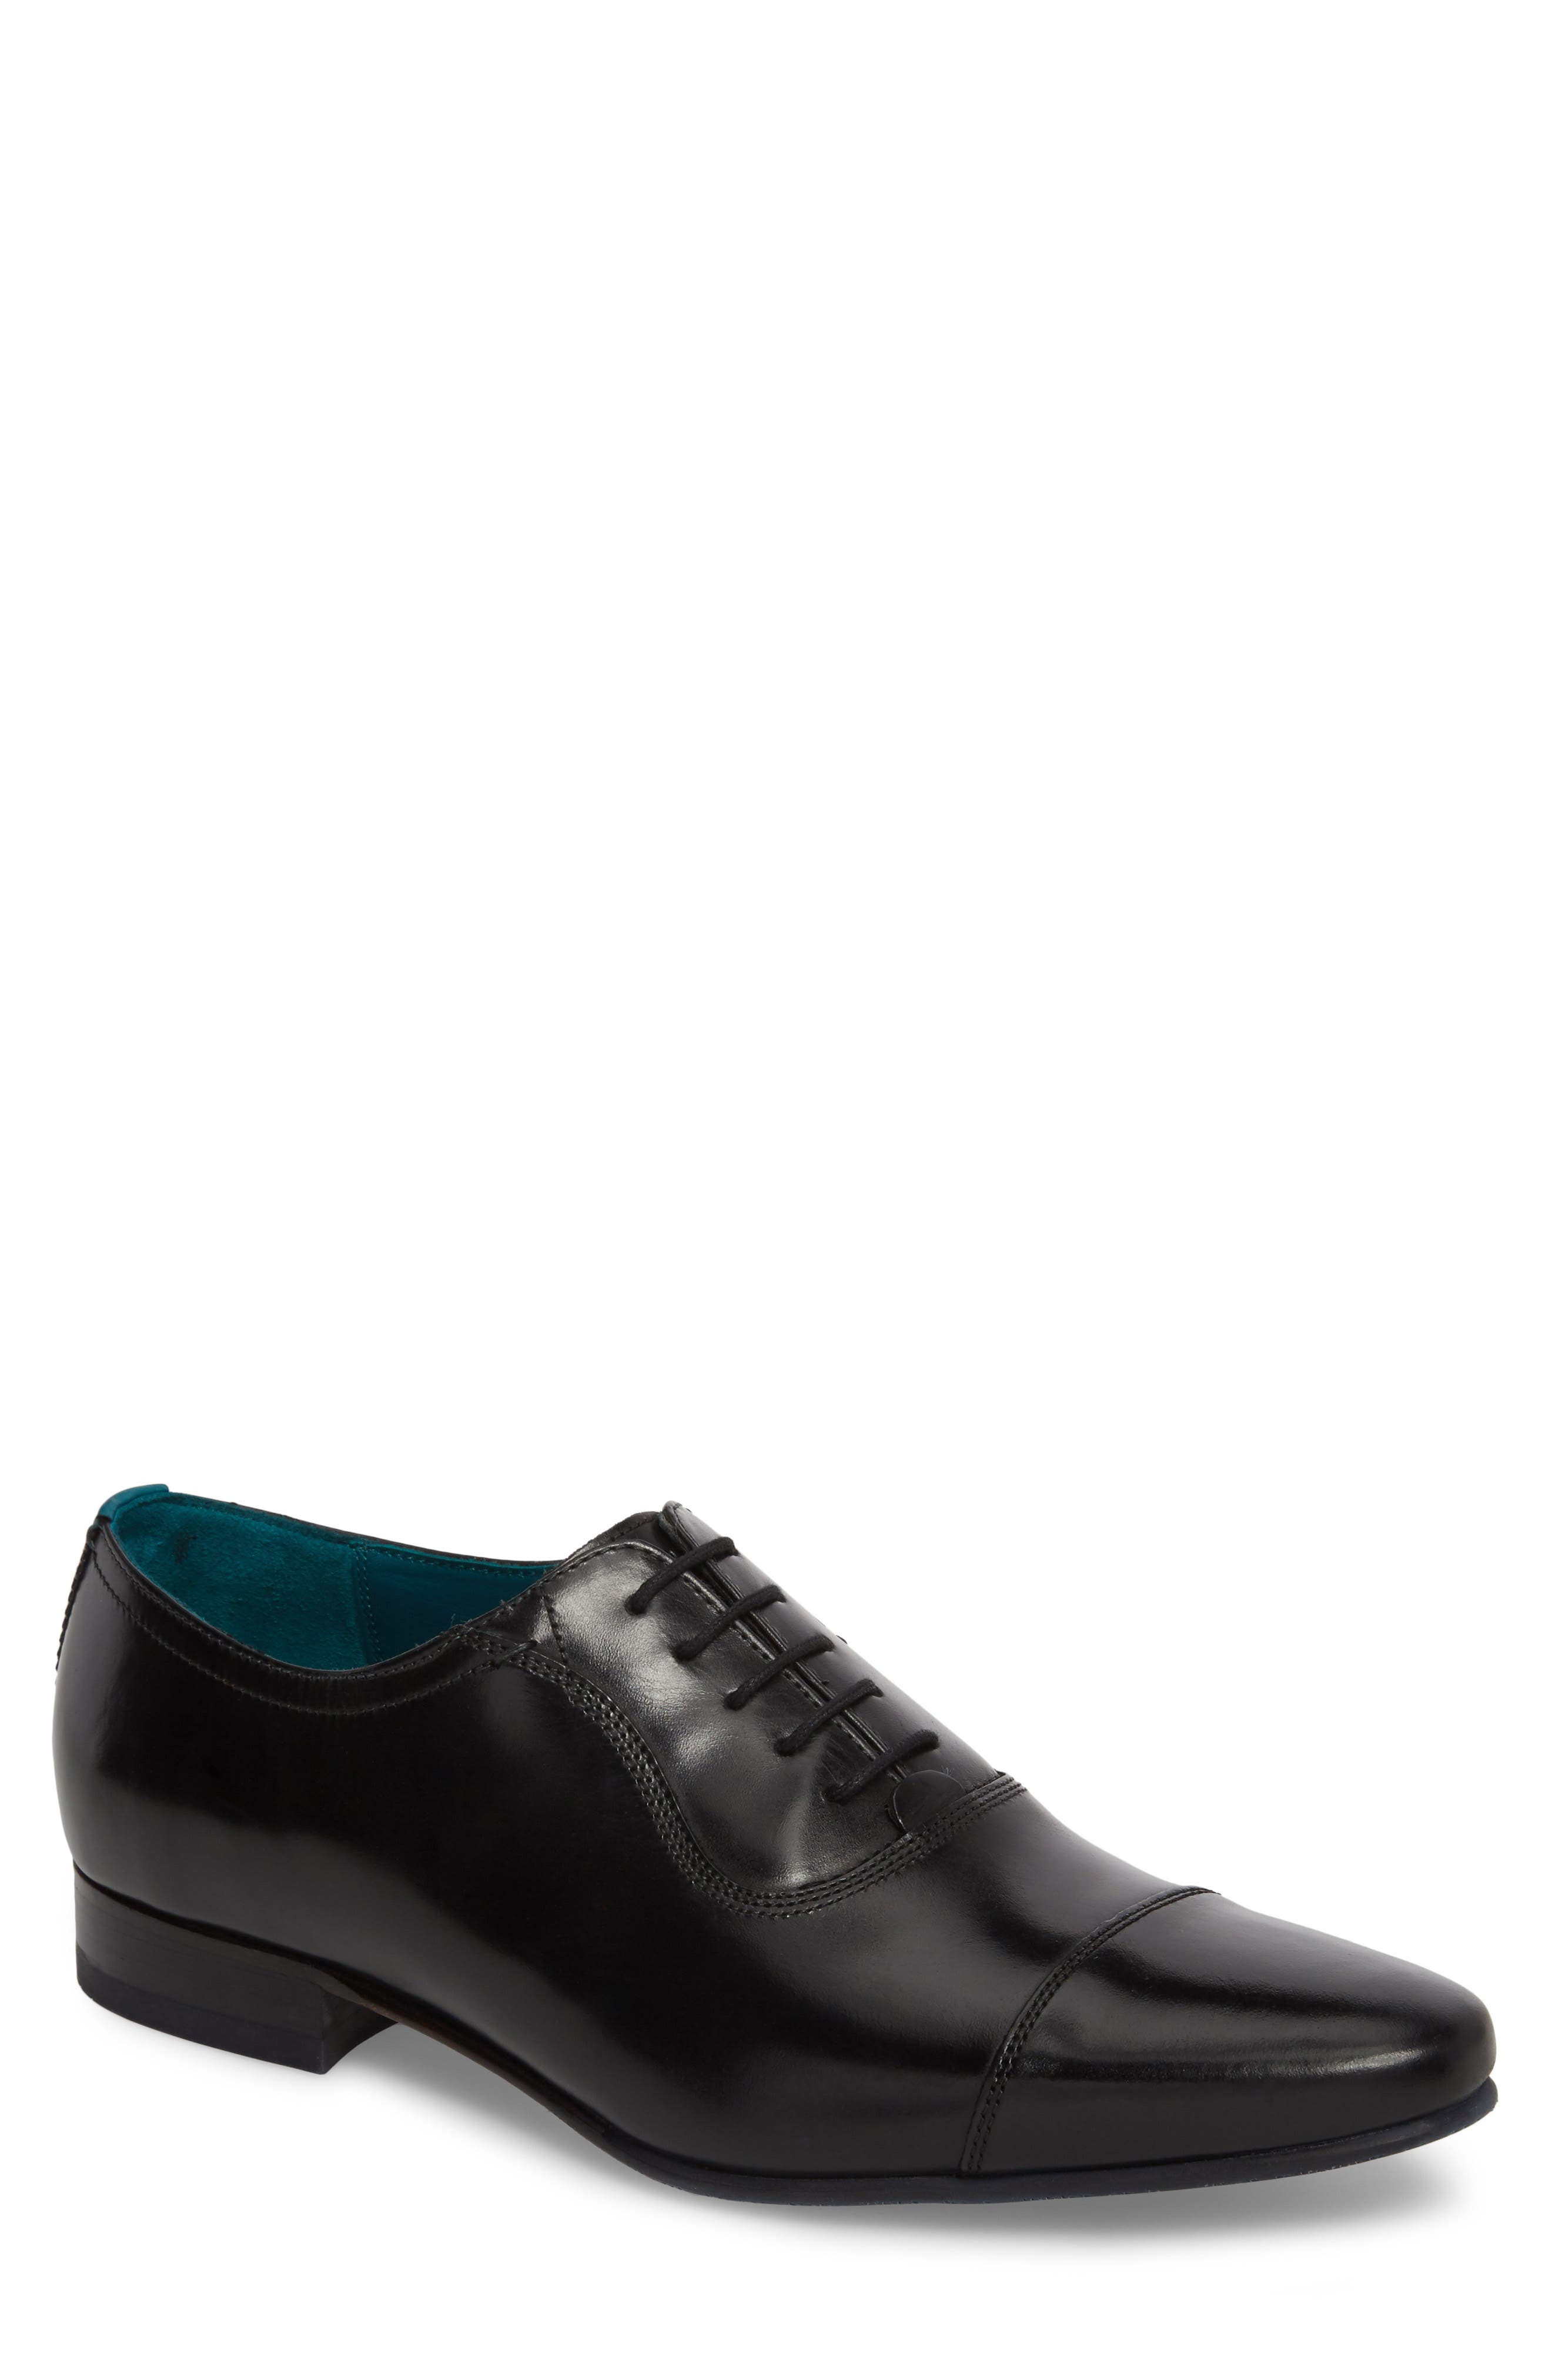 Karney Cap Toe Oxford,                         Main,                         color, Black Leather